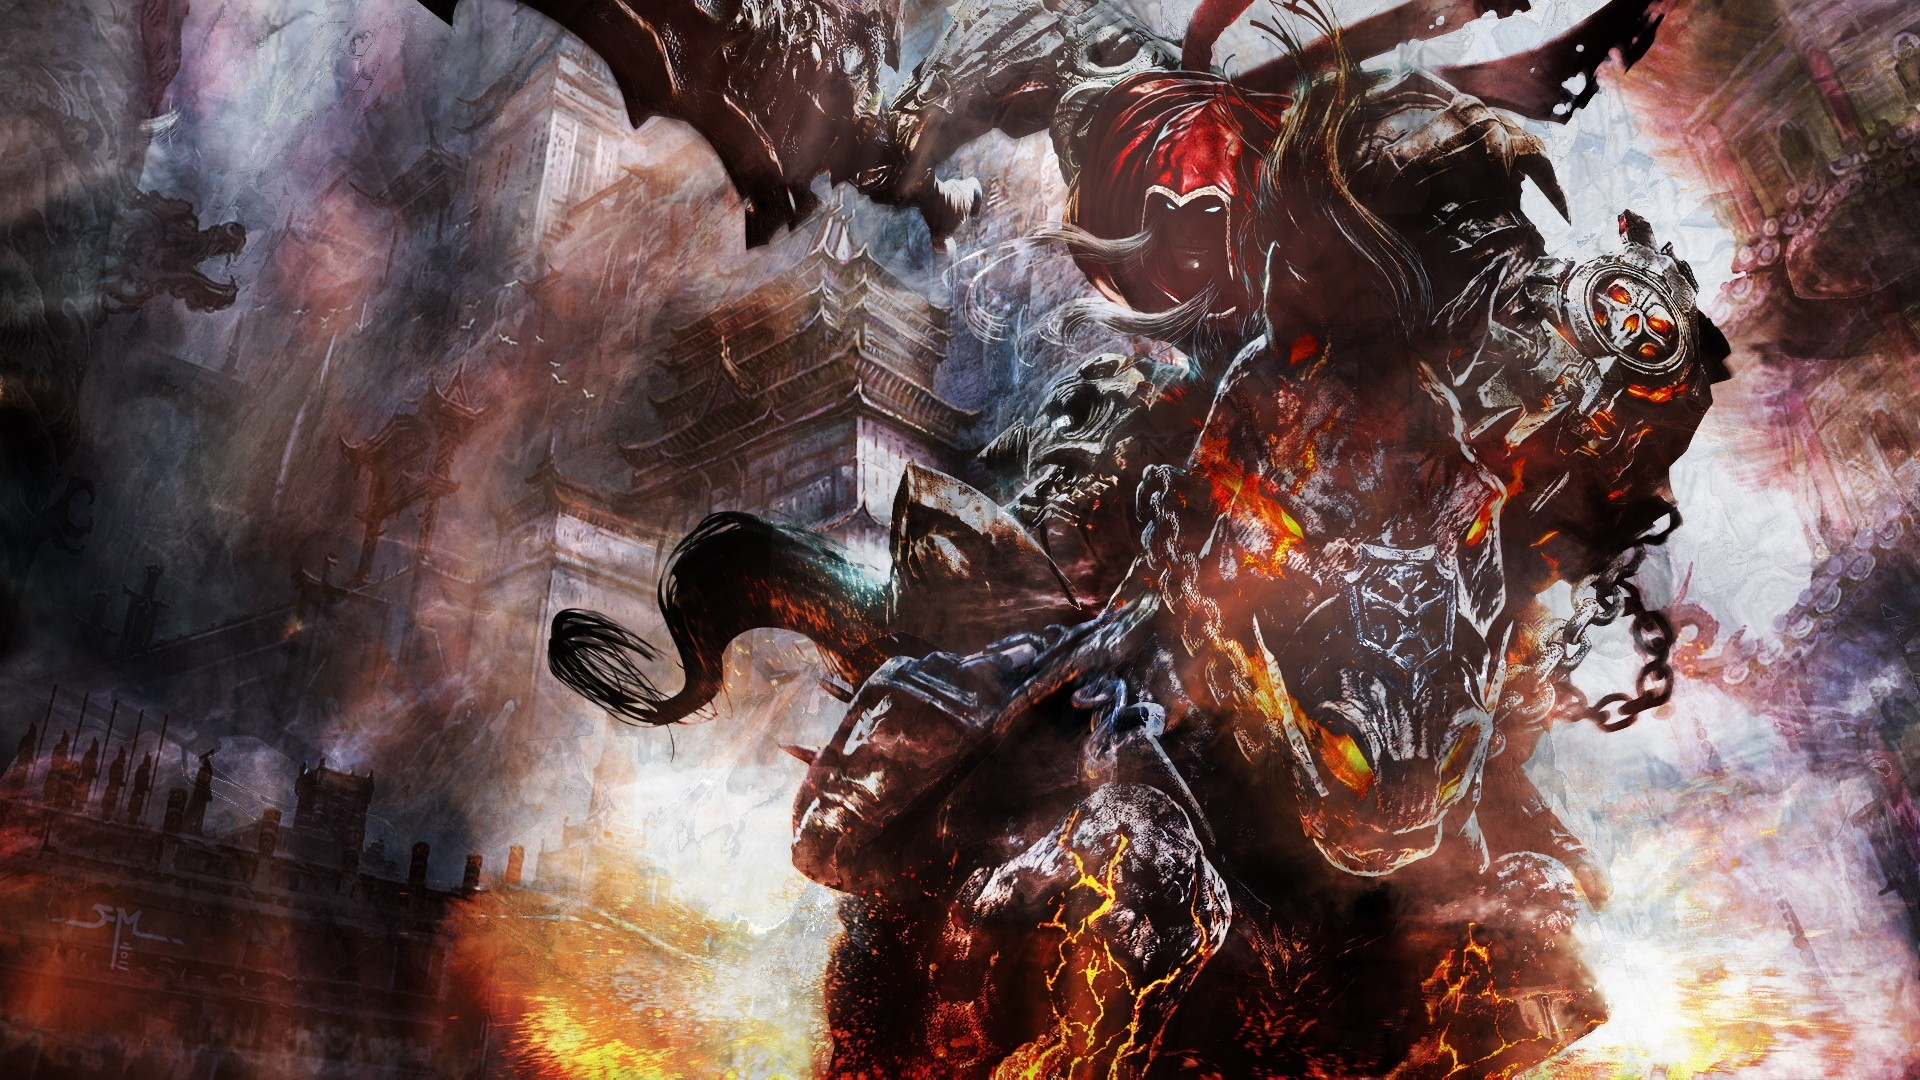 Darksiders Four Horsemen Wallpaper (85+ images)